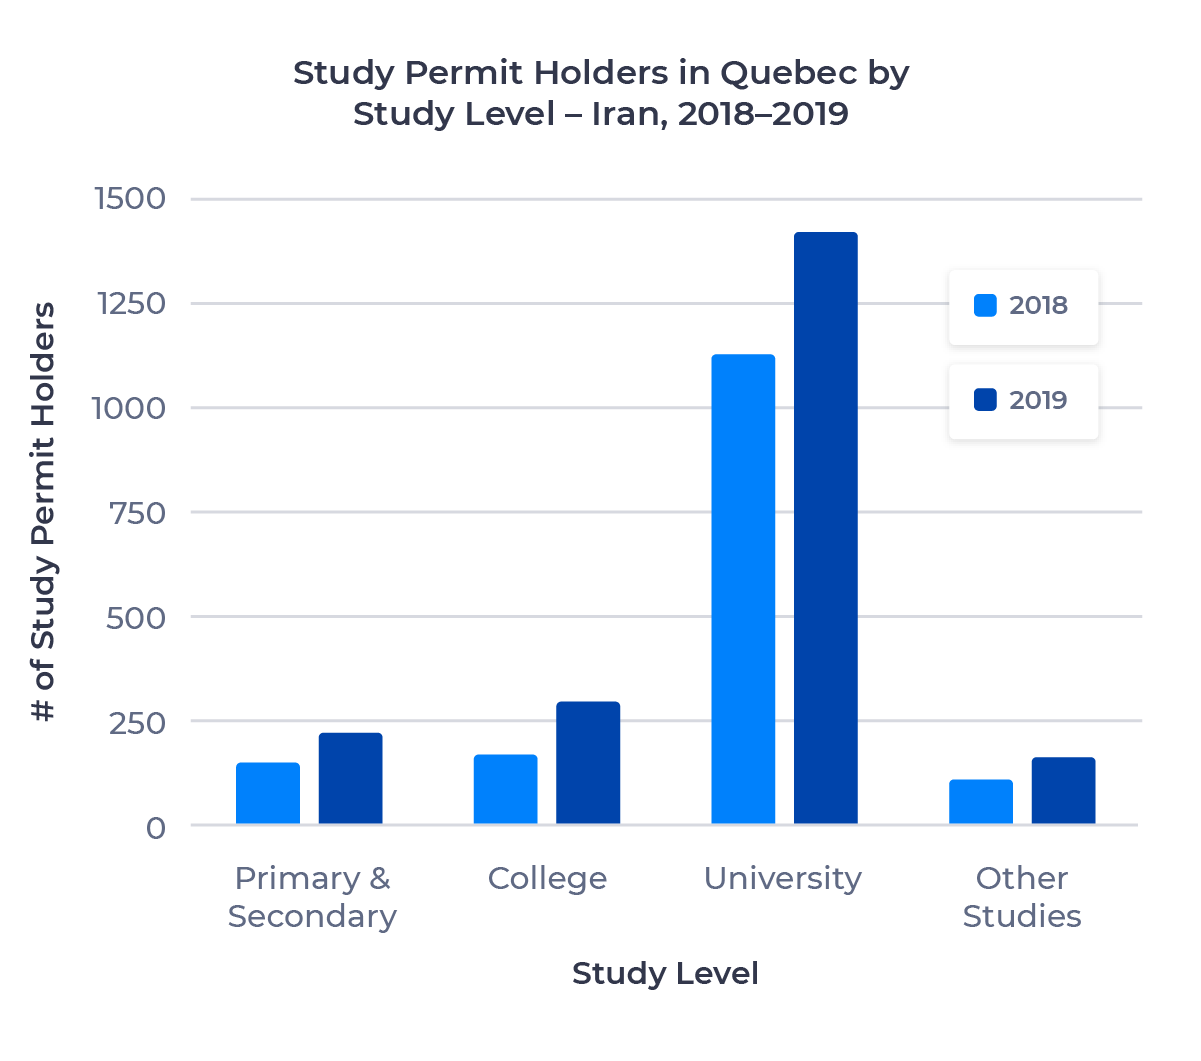 Bar chart showing the number of study permit holders in Quebec from Iran by study level. Described in detail below.